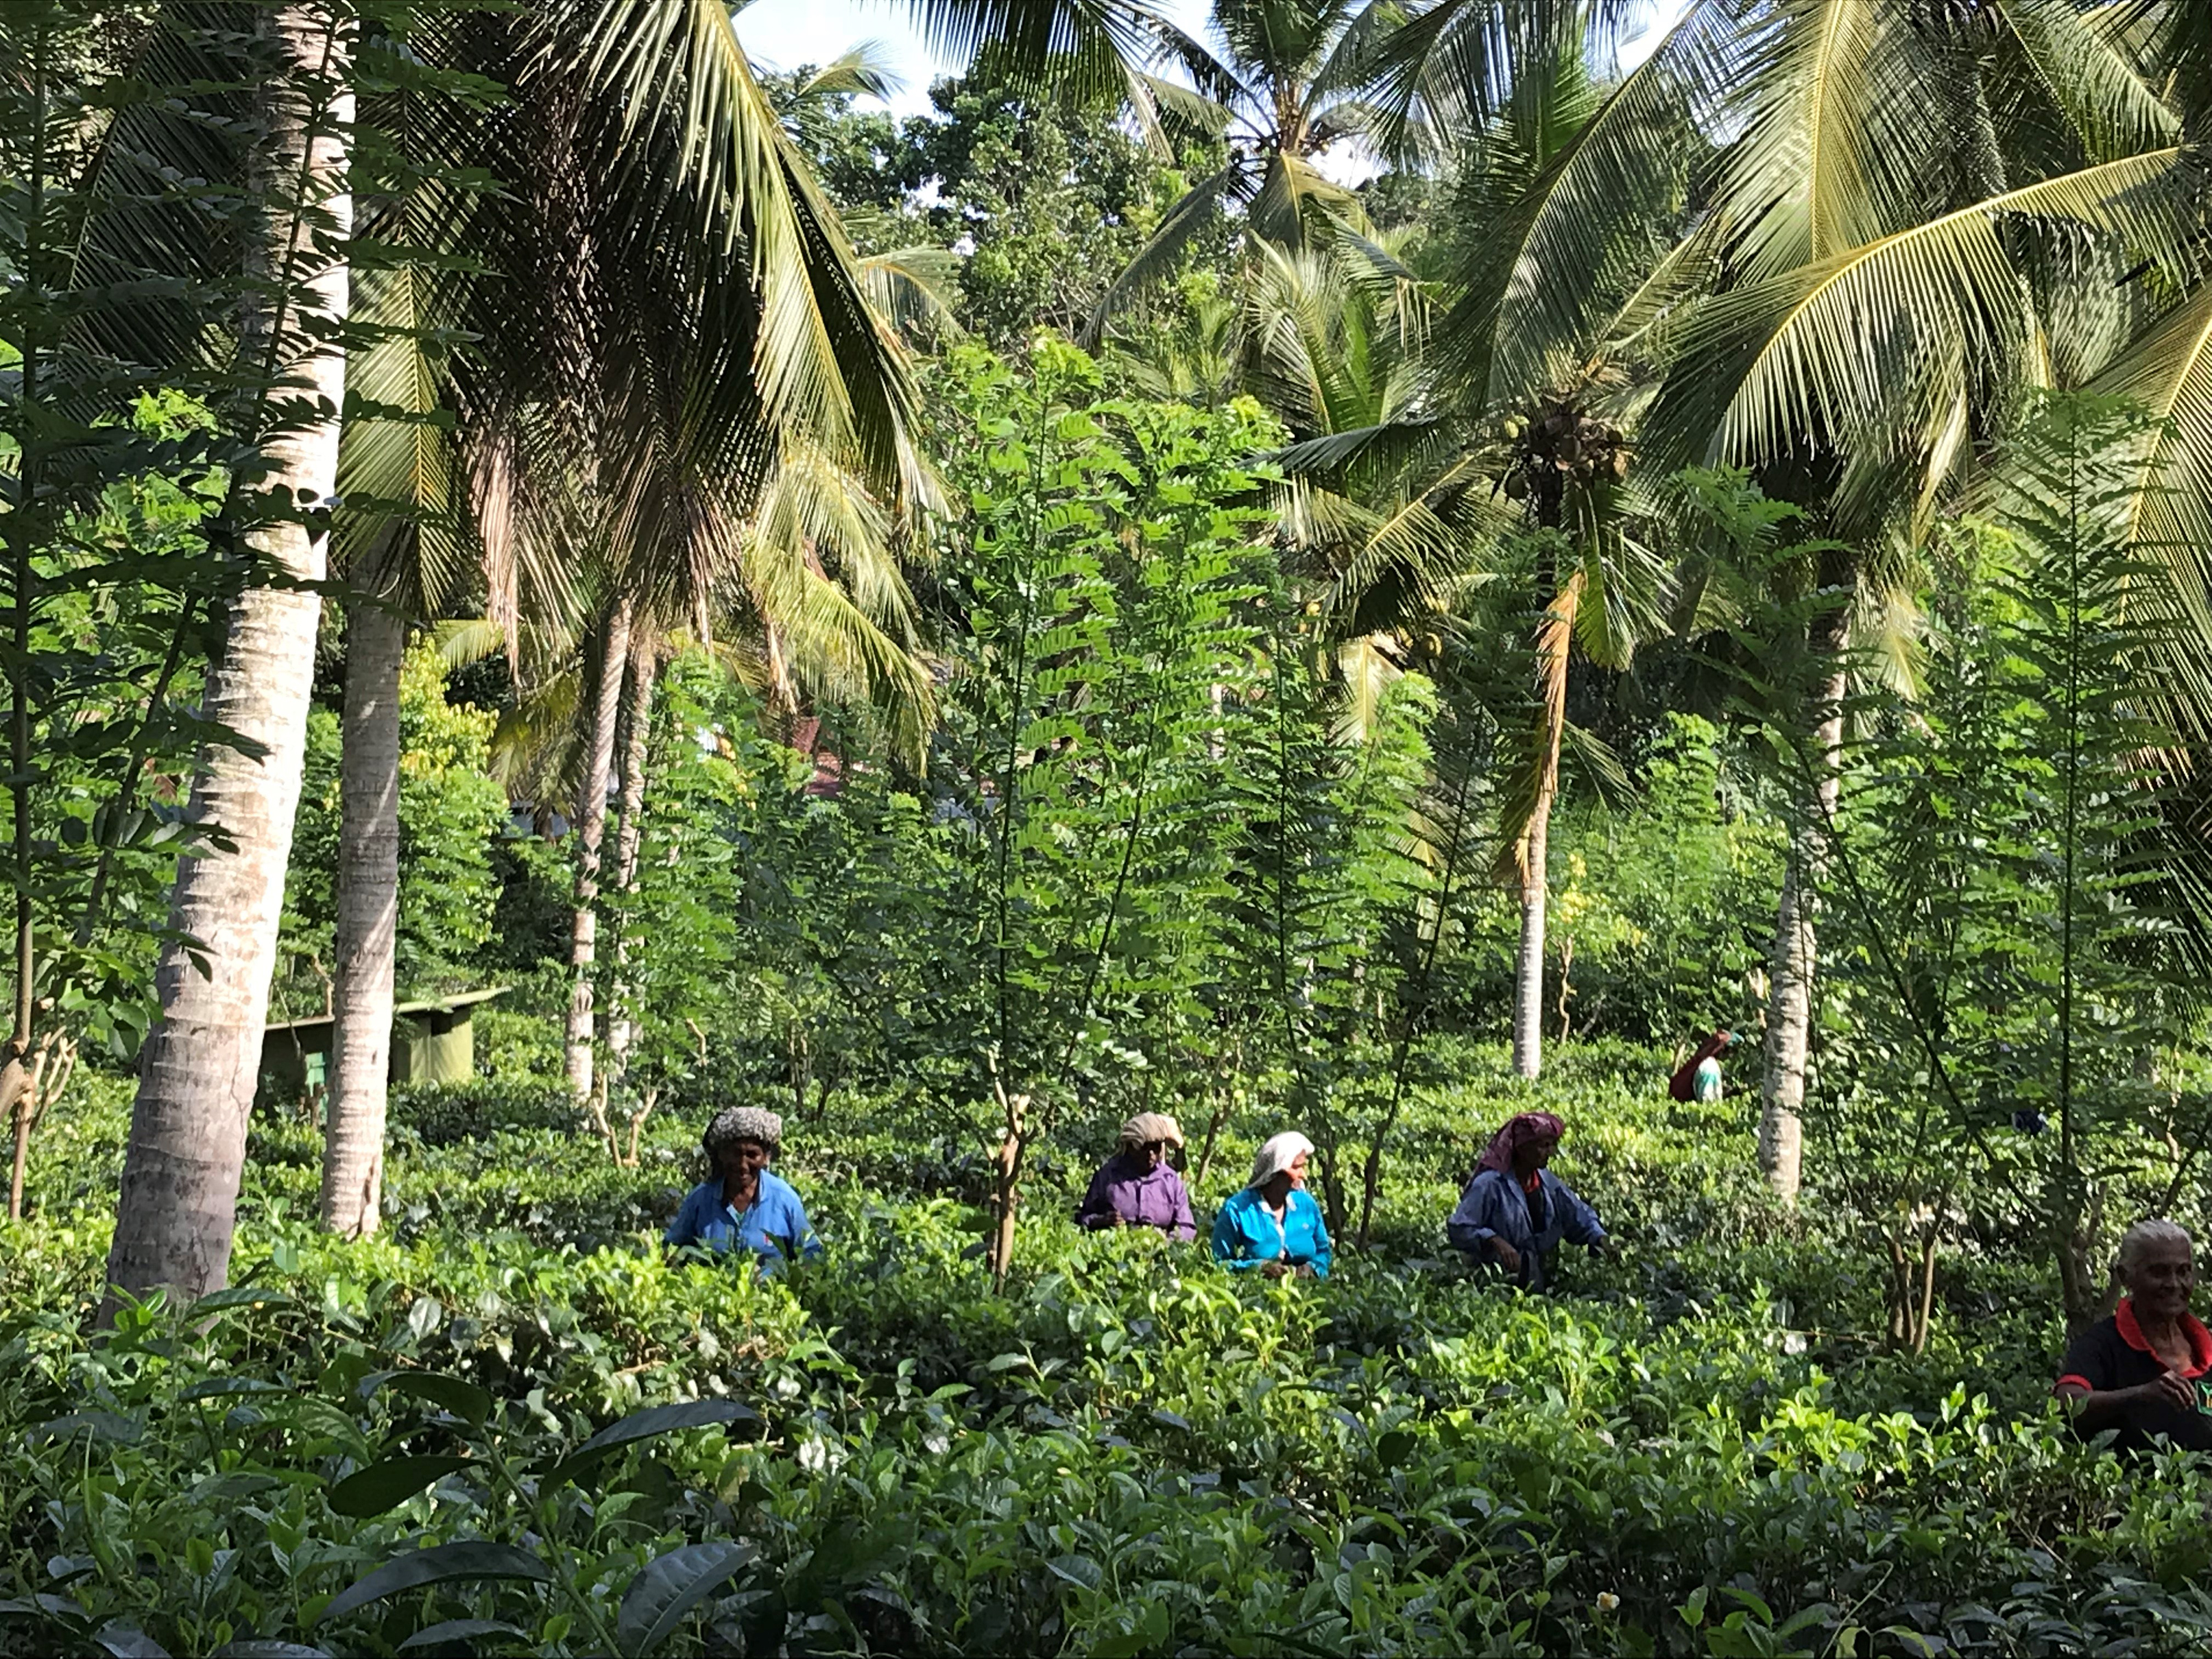 Tea pickers at Handunugoda Estate (Hannah Stephenson/PA)